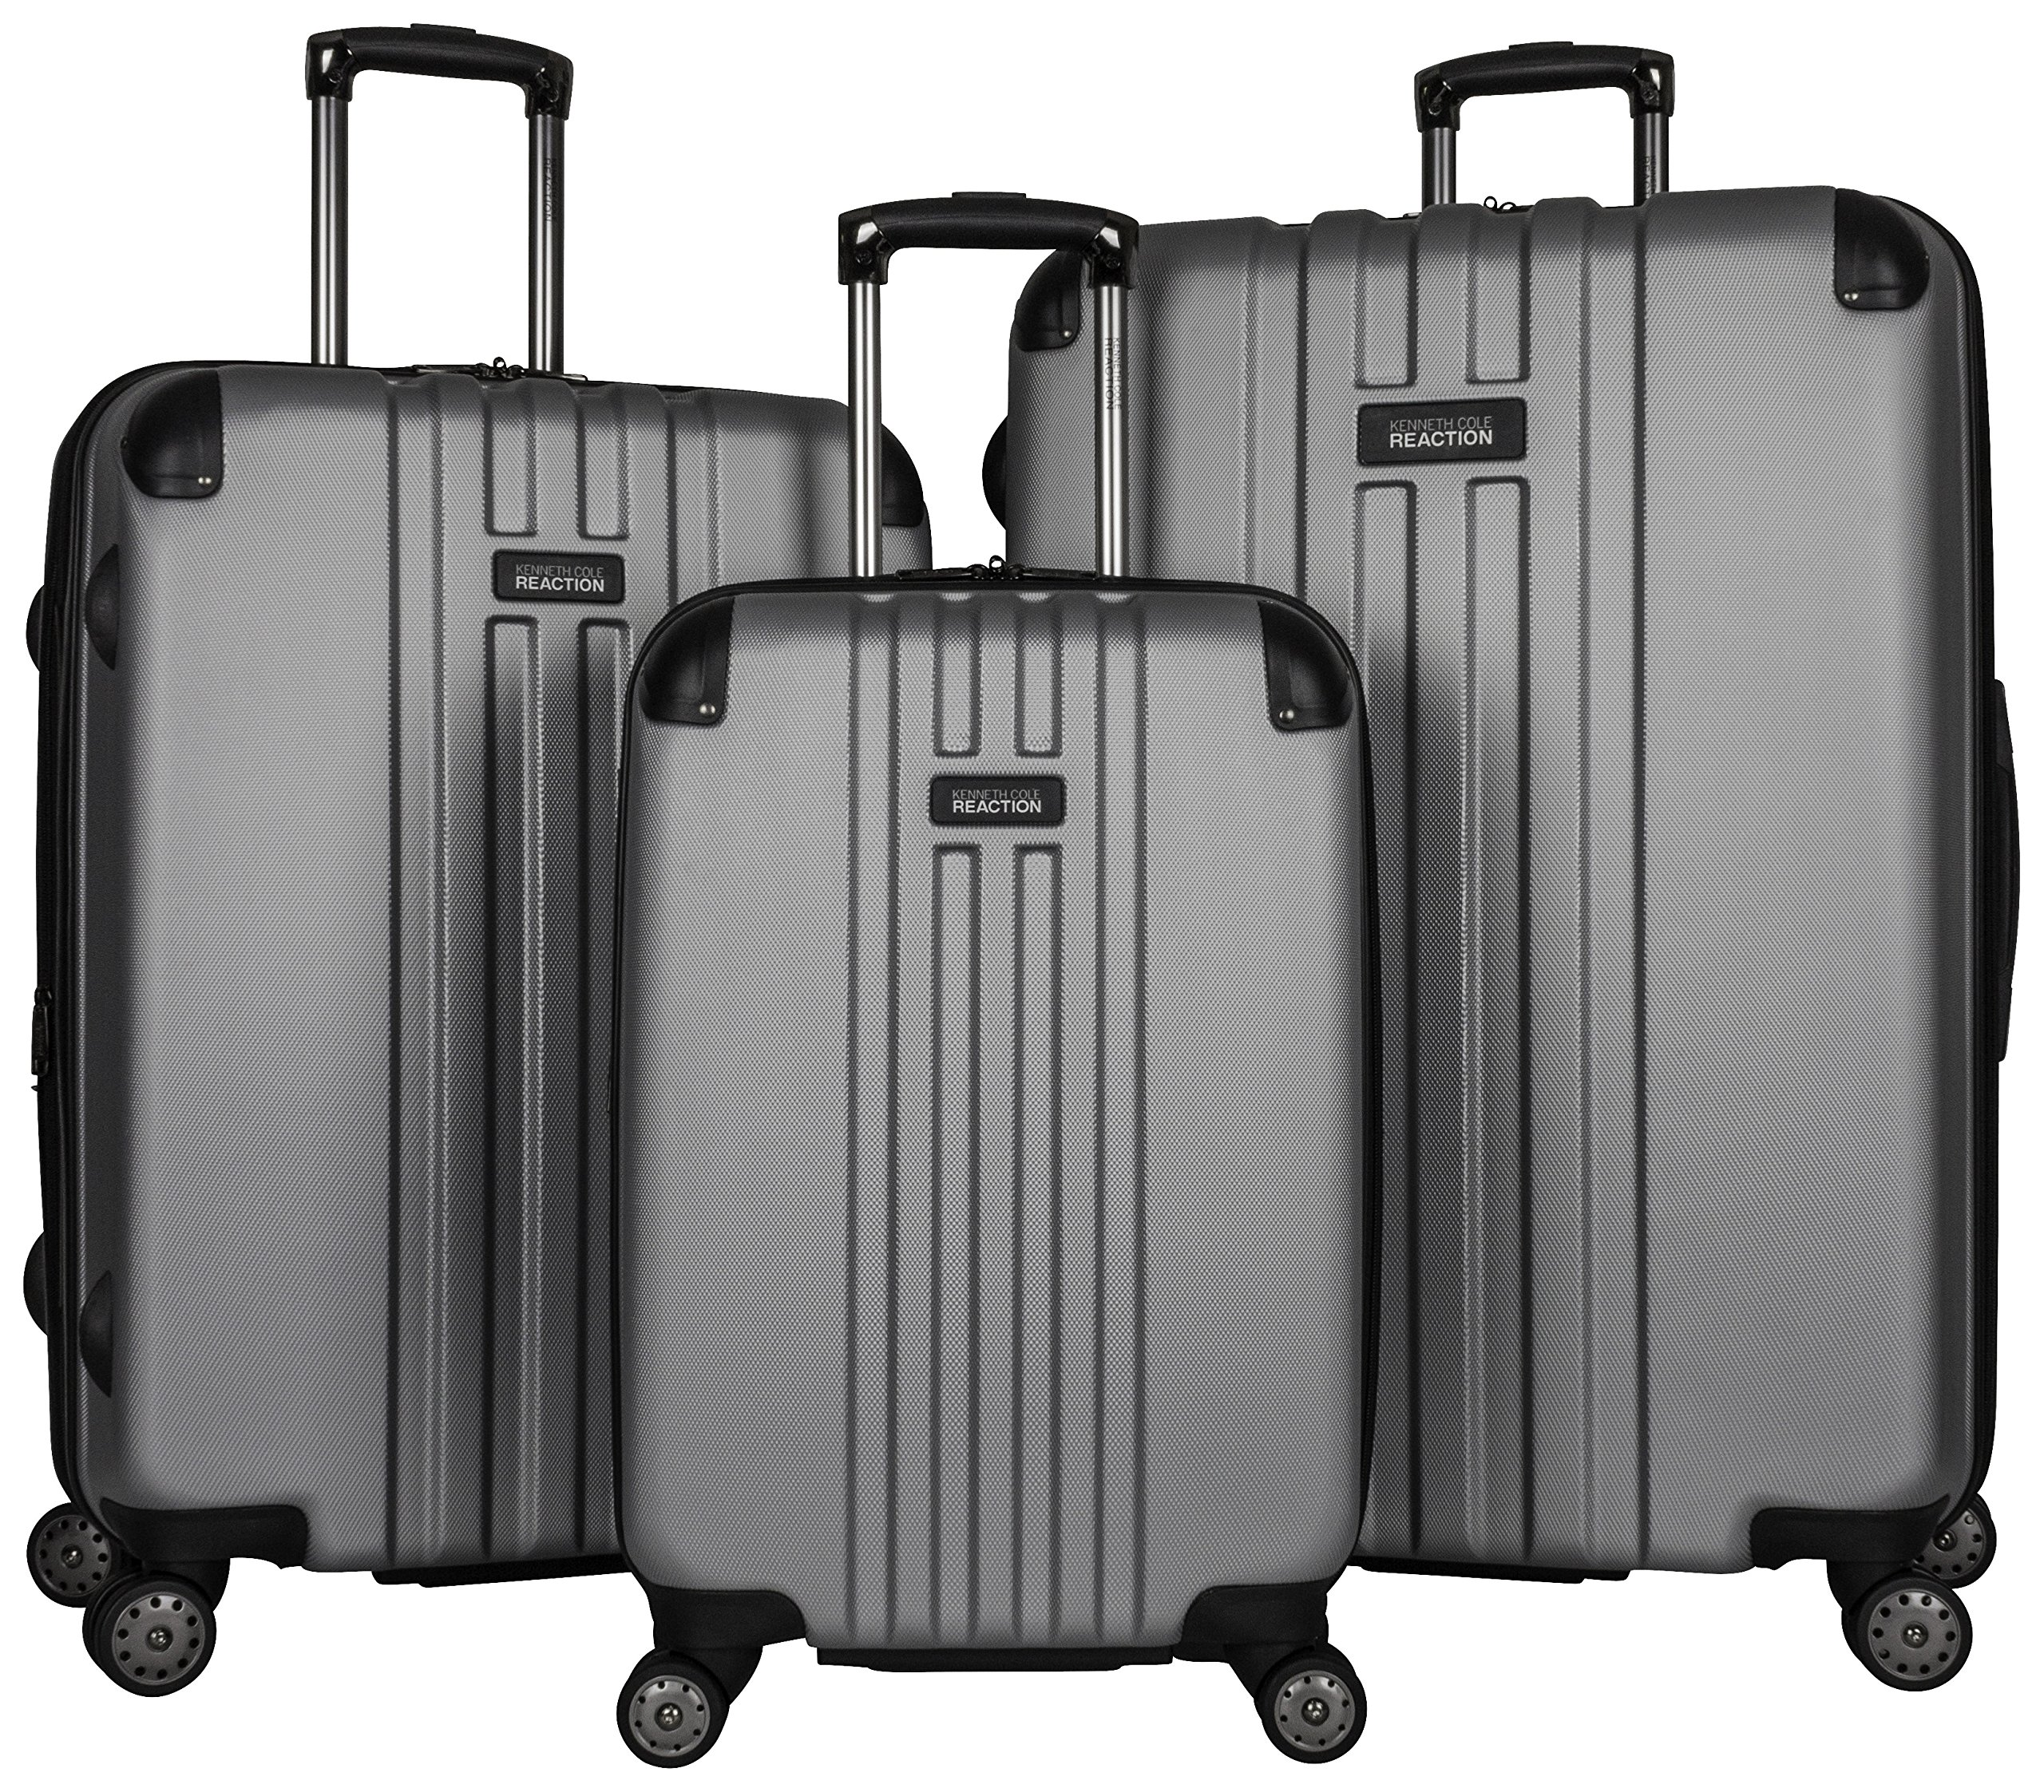 Kenneth Cole Reaction Reverb 3-Piece Luggage Set, Light Silver